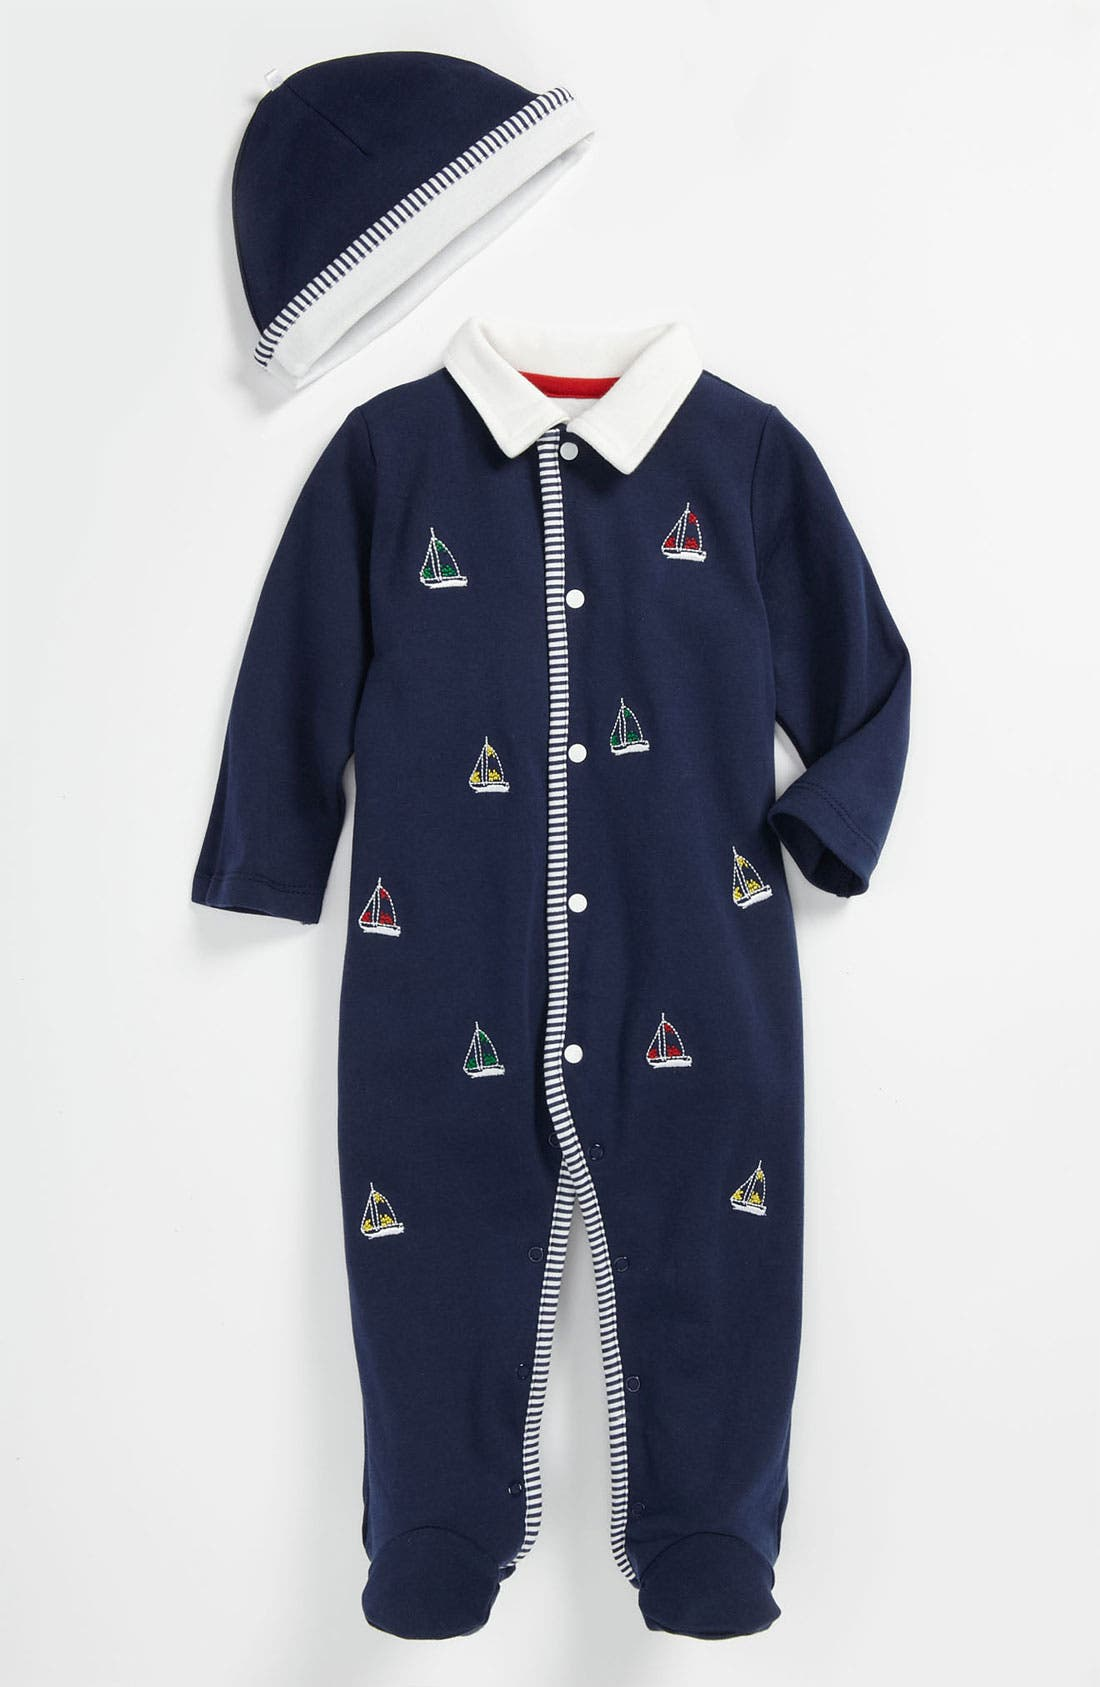 Main Image - Little Me 'Drop Anchor Yachting' Romper & Hat (Baby)